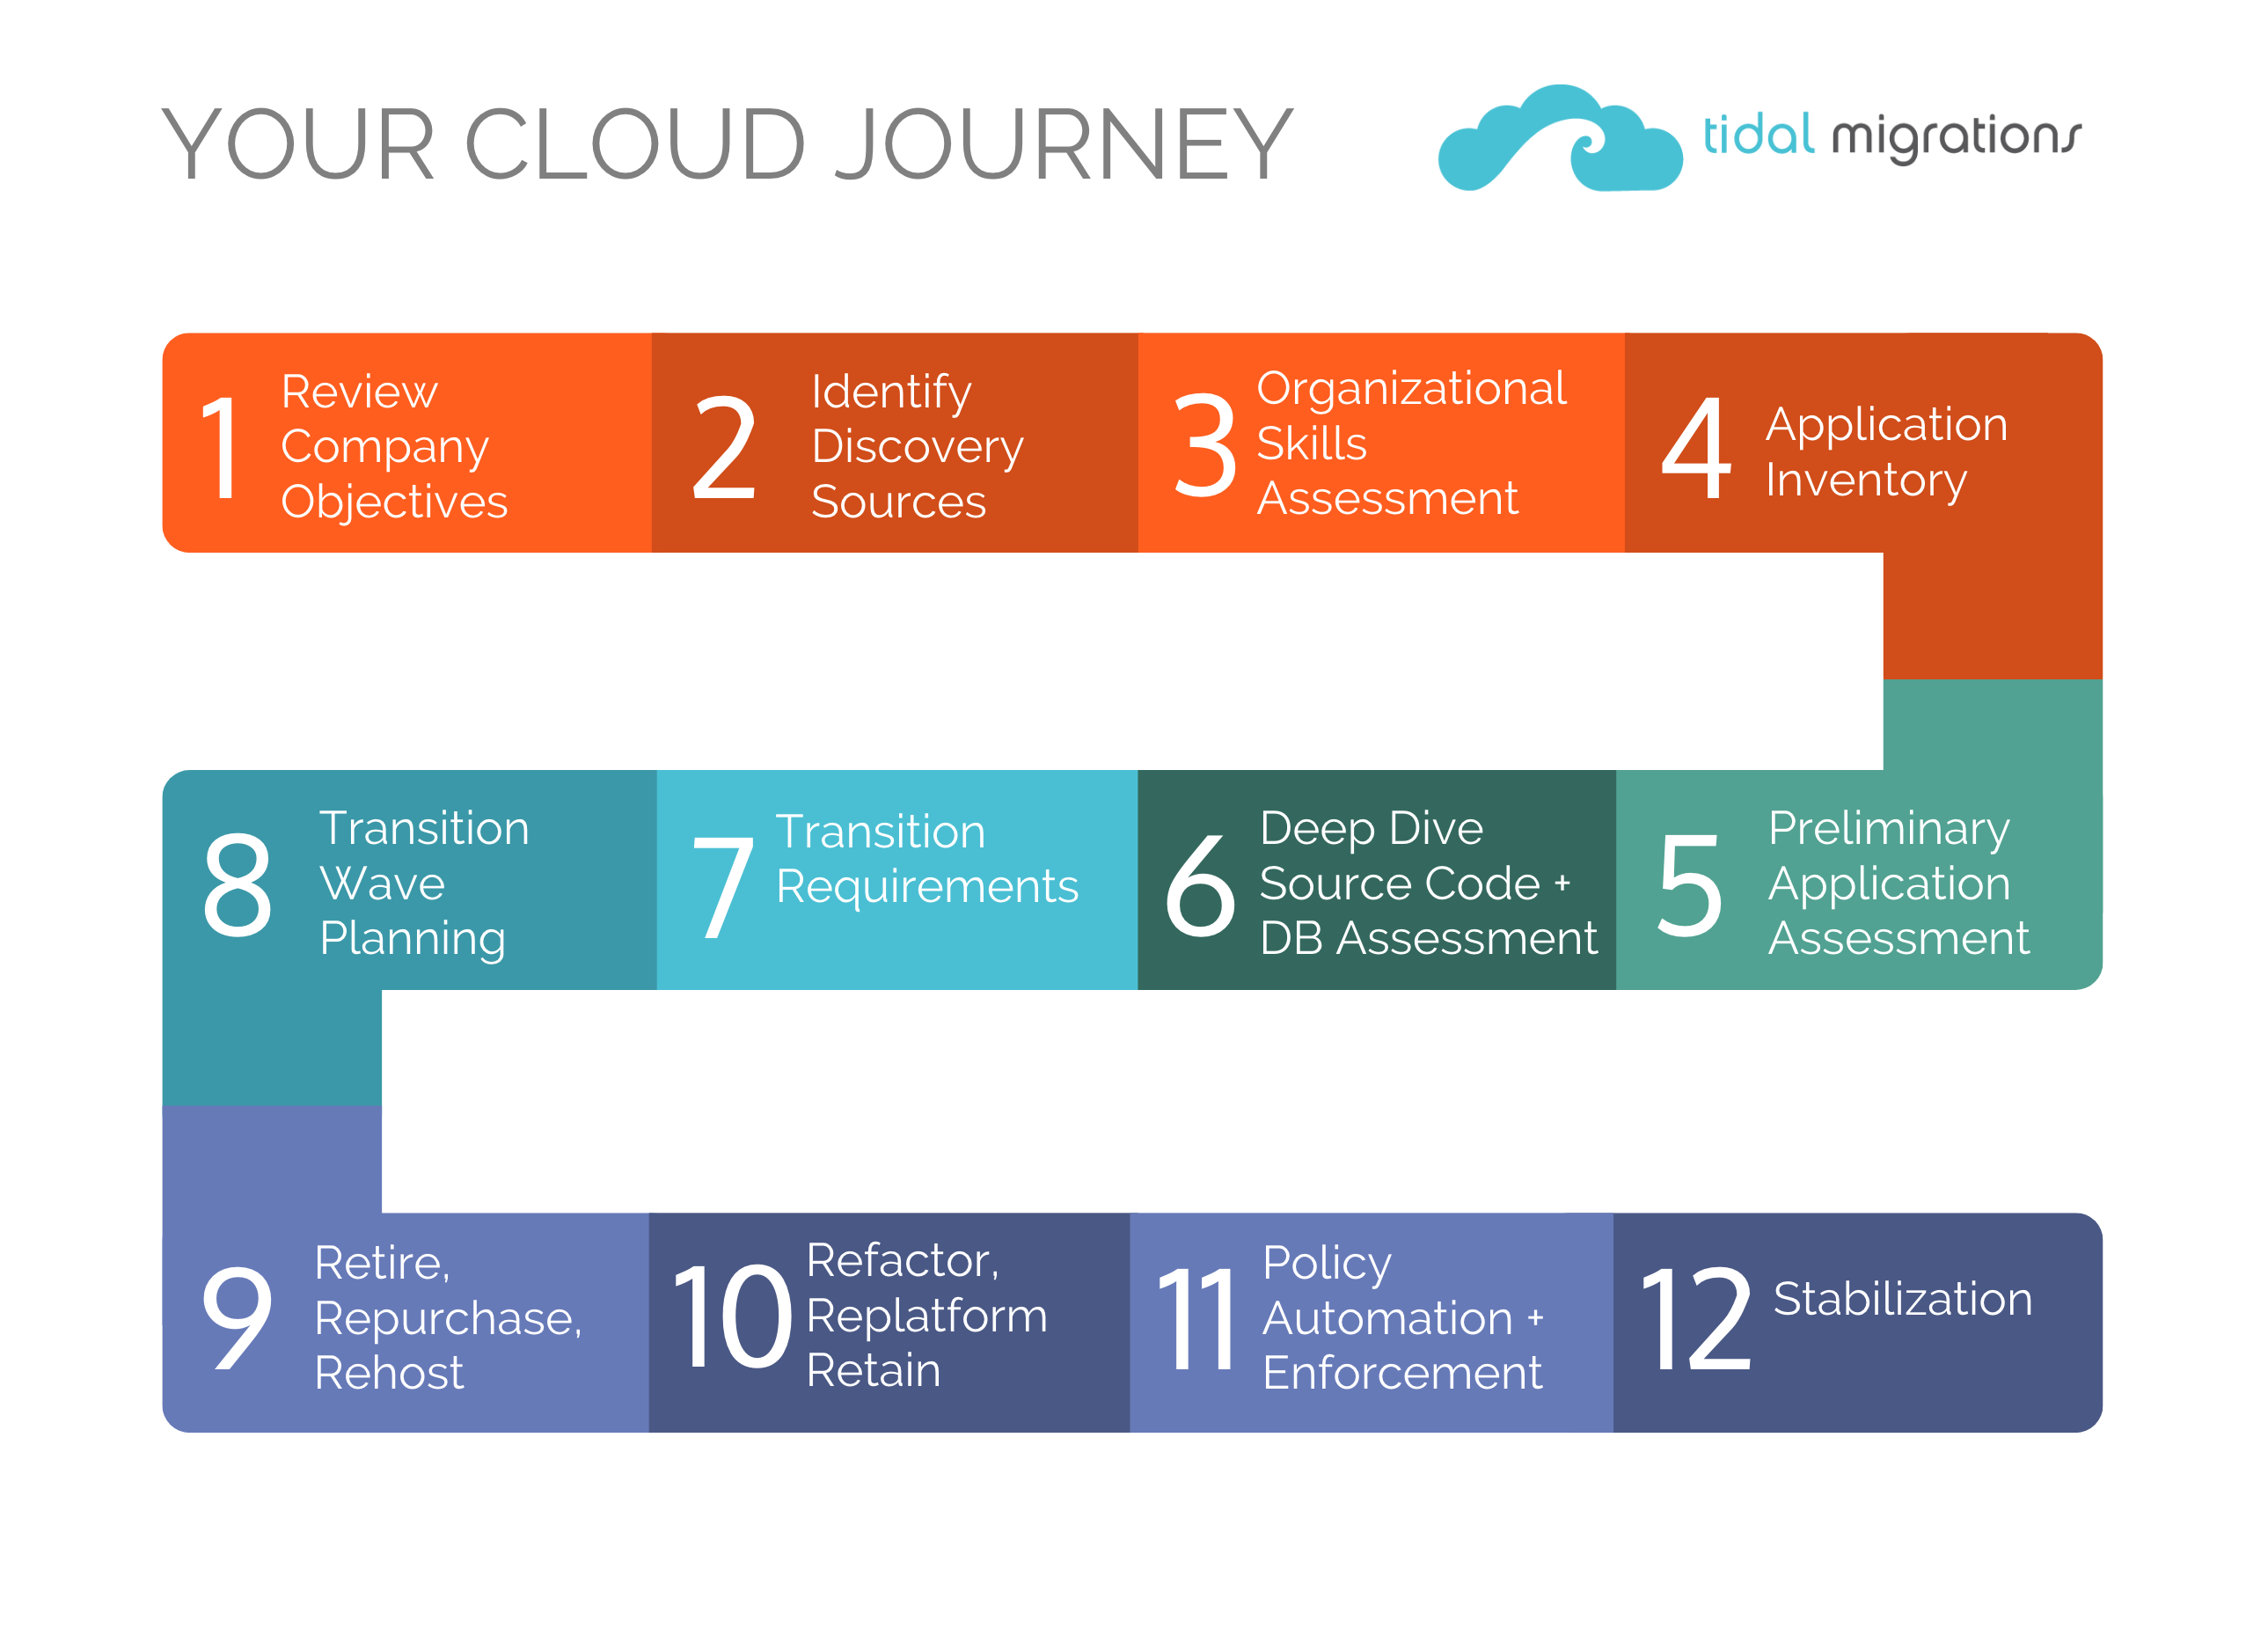 Your cloud journey